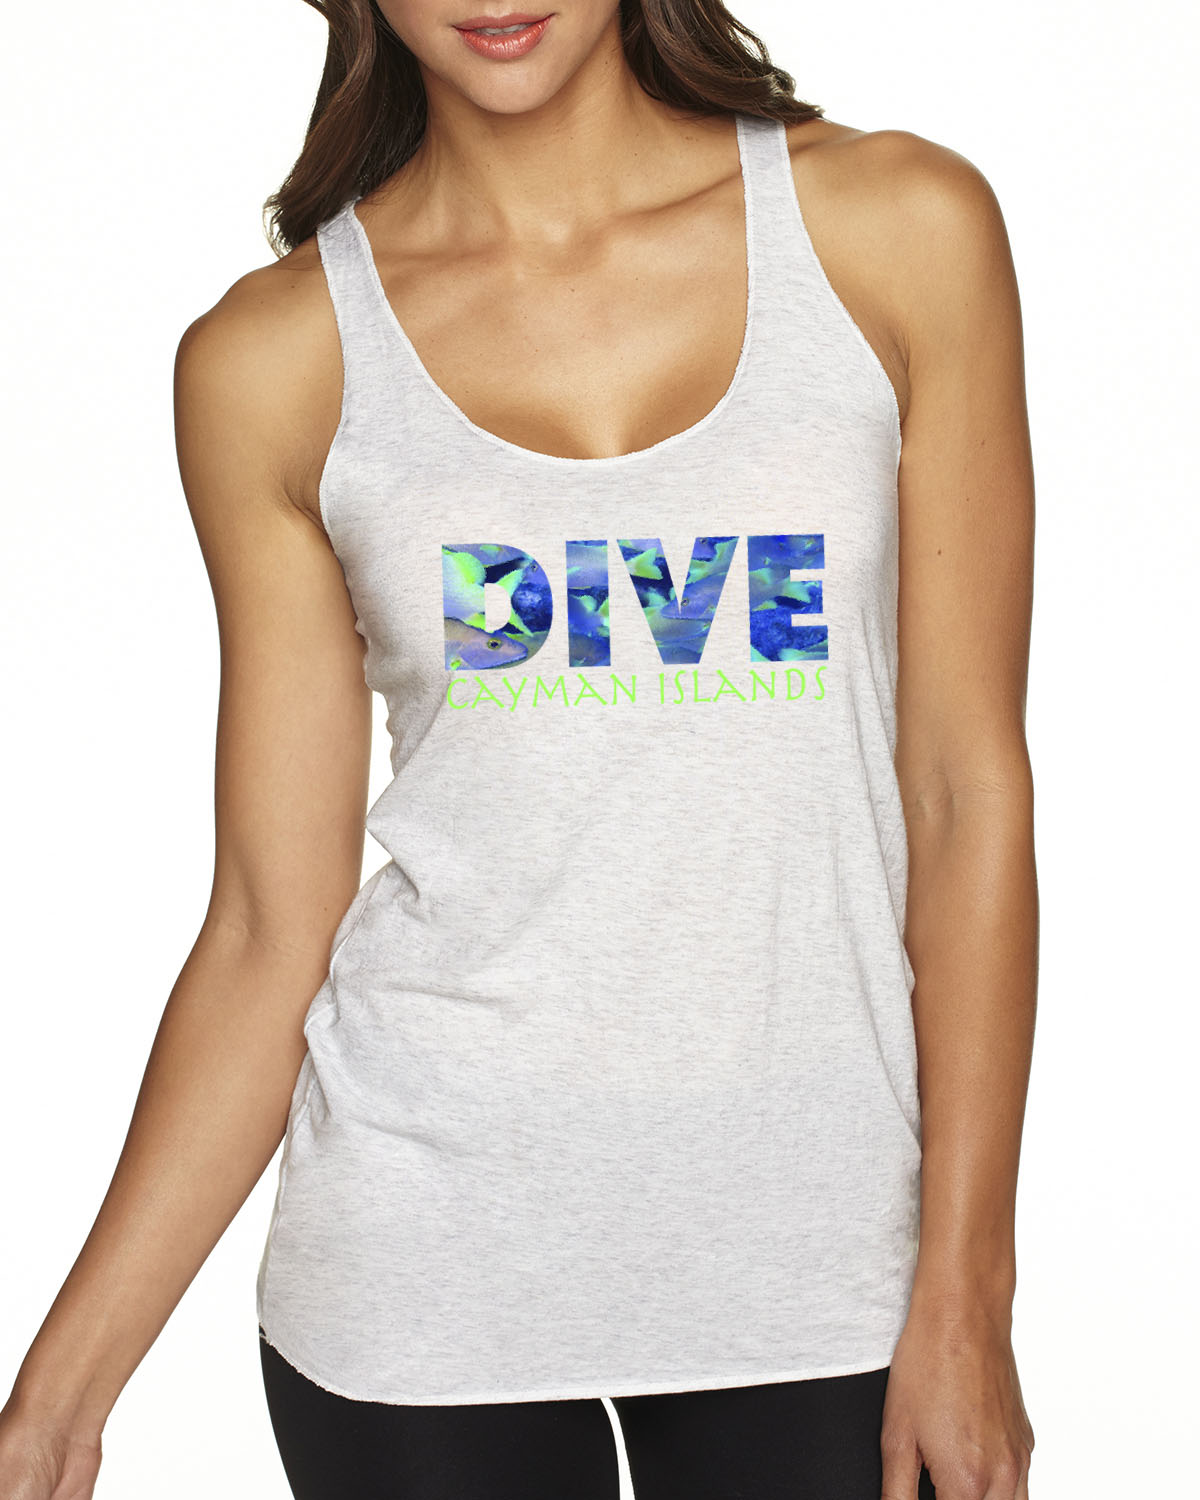 Racer-Back DIVE Cayman Islands Tank Top (Heather White)